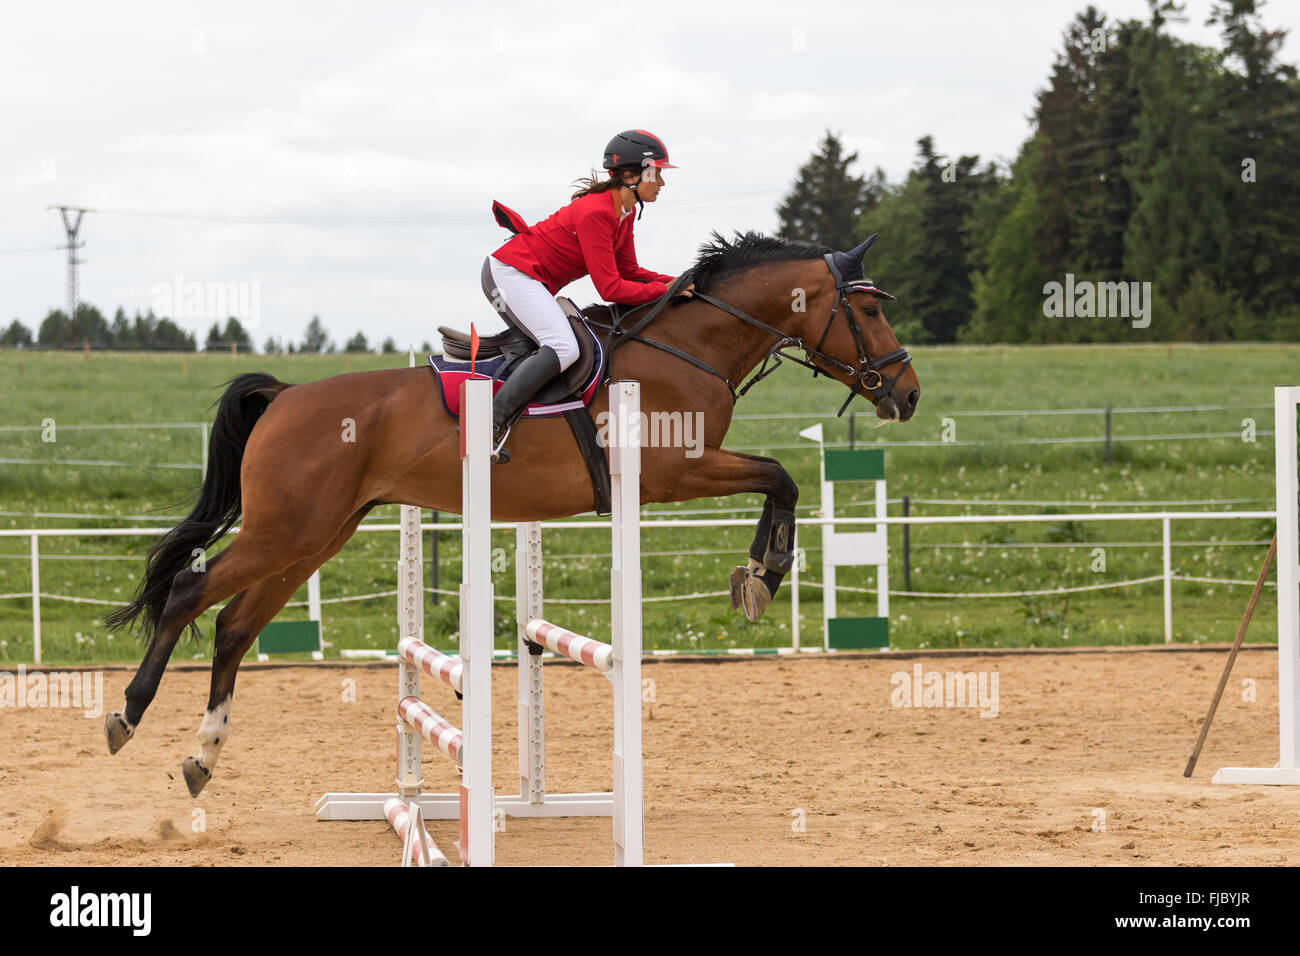 Side view of  horsewoman in red jacket that is jumping - Stock Image